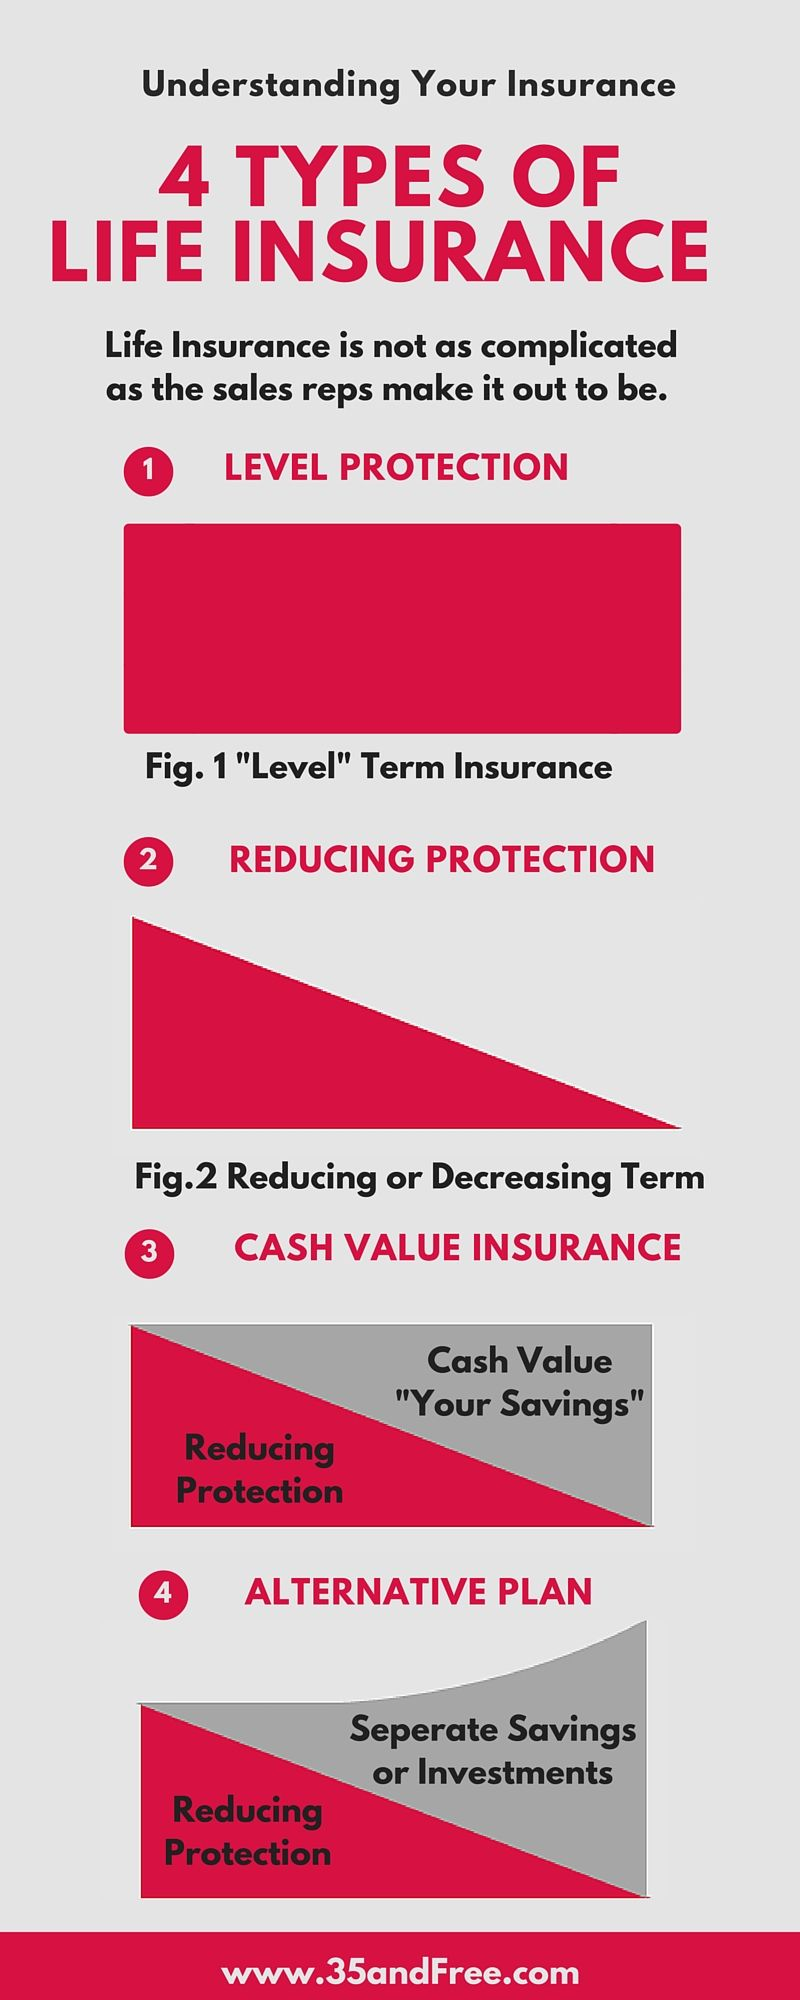 decreasing term insurance is a type of insurance where